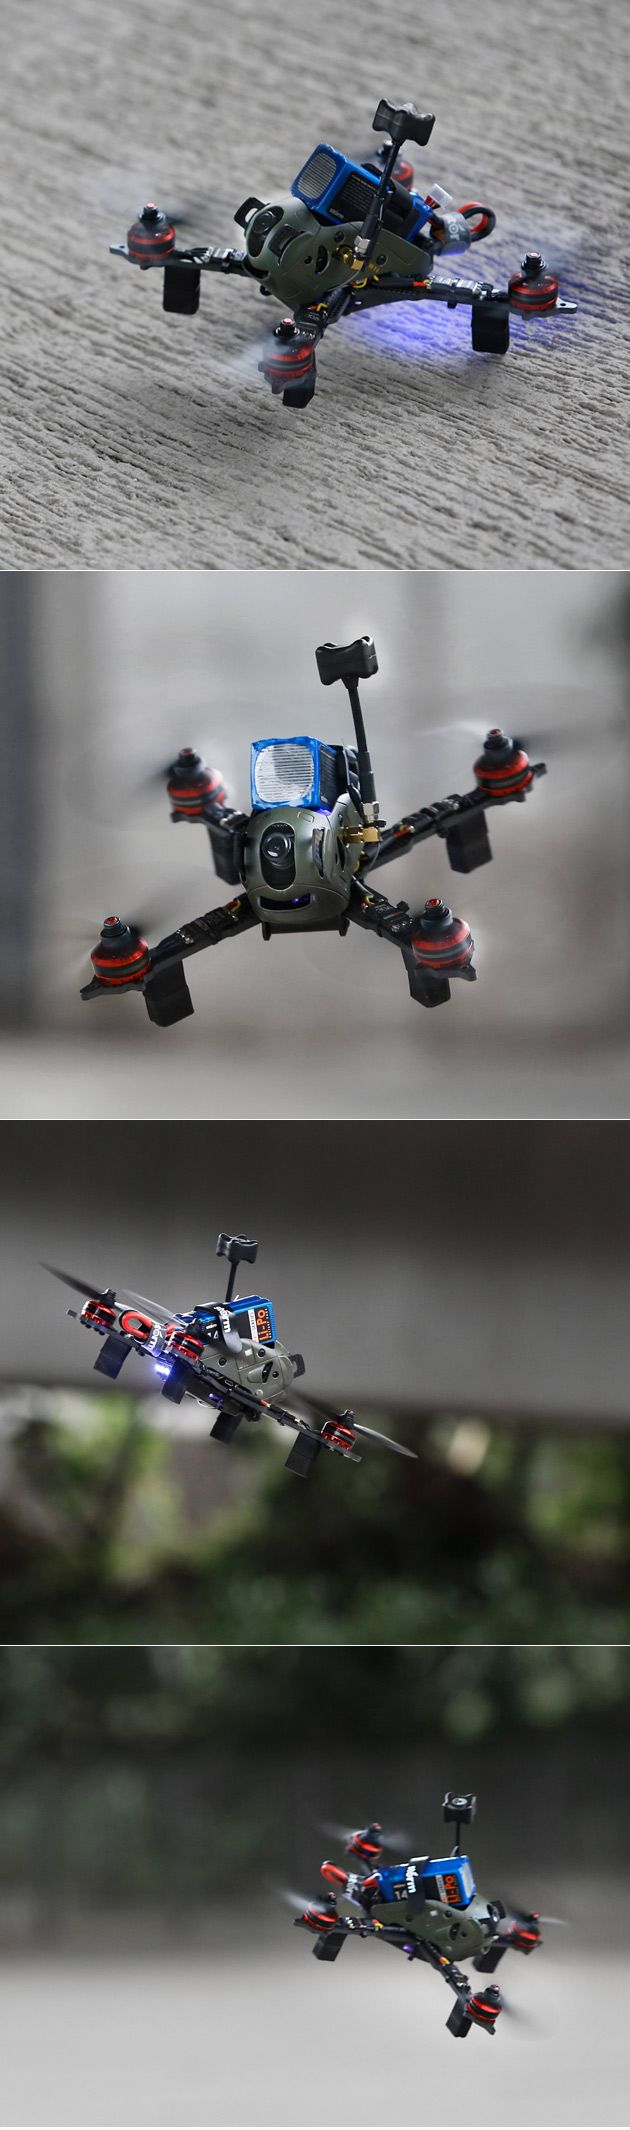 """Storm Mech X5 pod racer  Designed and manufactured by the same team of Storm SRD280, the Storm Mech X5 is a  light weight 220mm class FPV racer for 5"""" propellers and 2204~2306 motors, it's a X-frame design with a full carbon fiber 4mm """"Unibody&"""